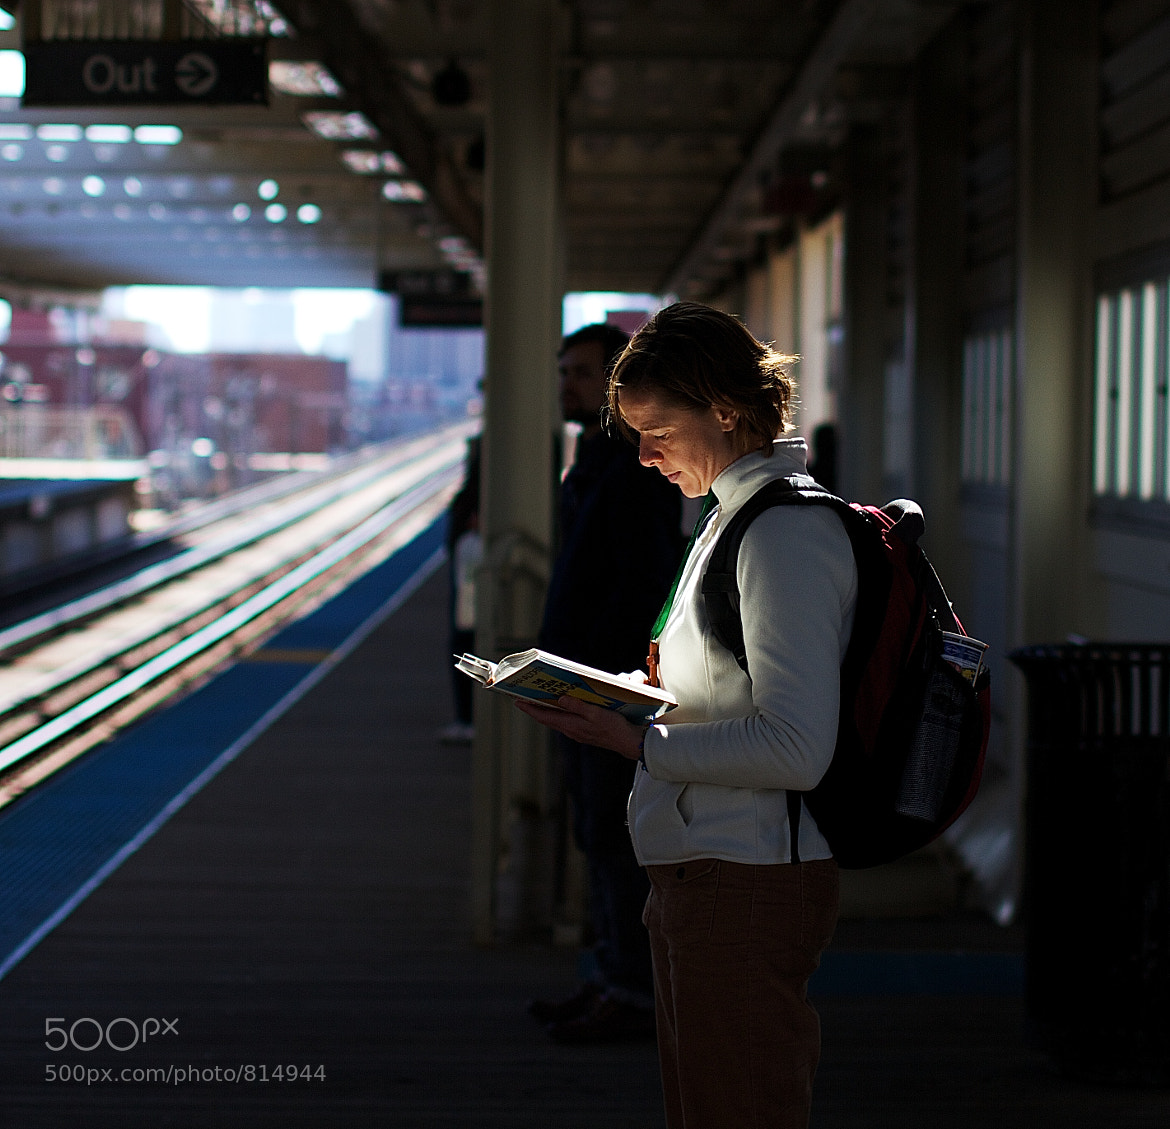 Photograph Reading Light by Joselito Tagarao on 500px